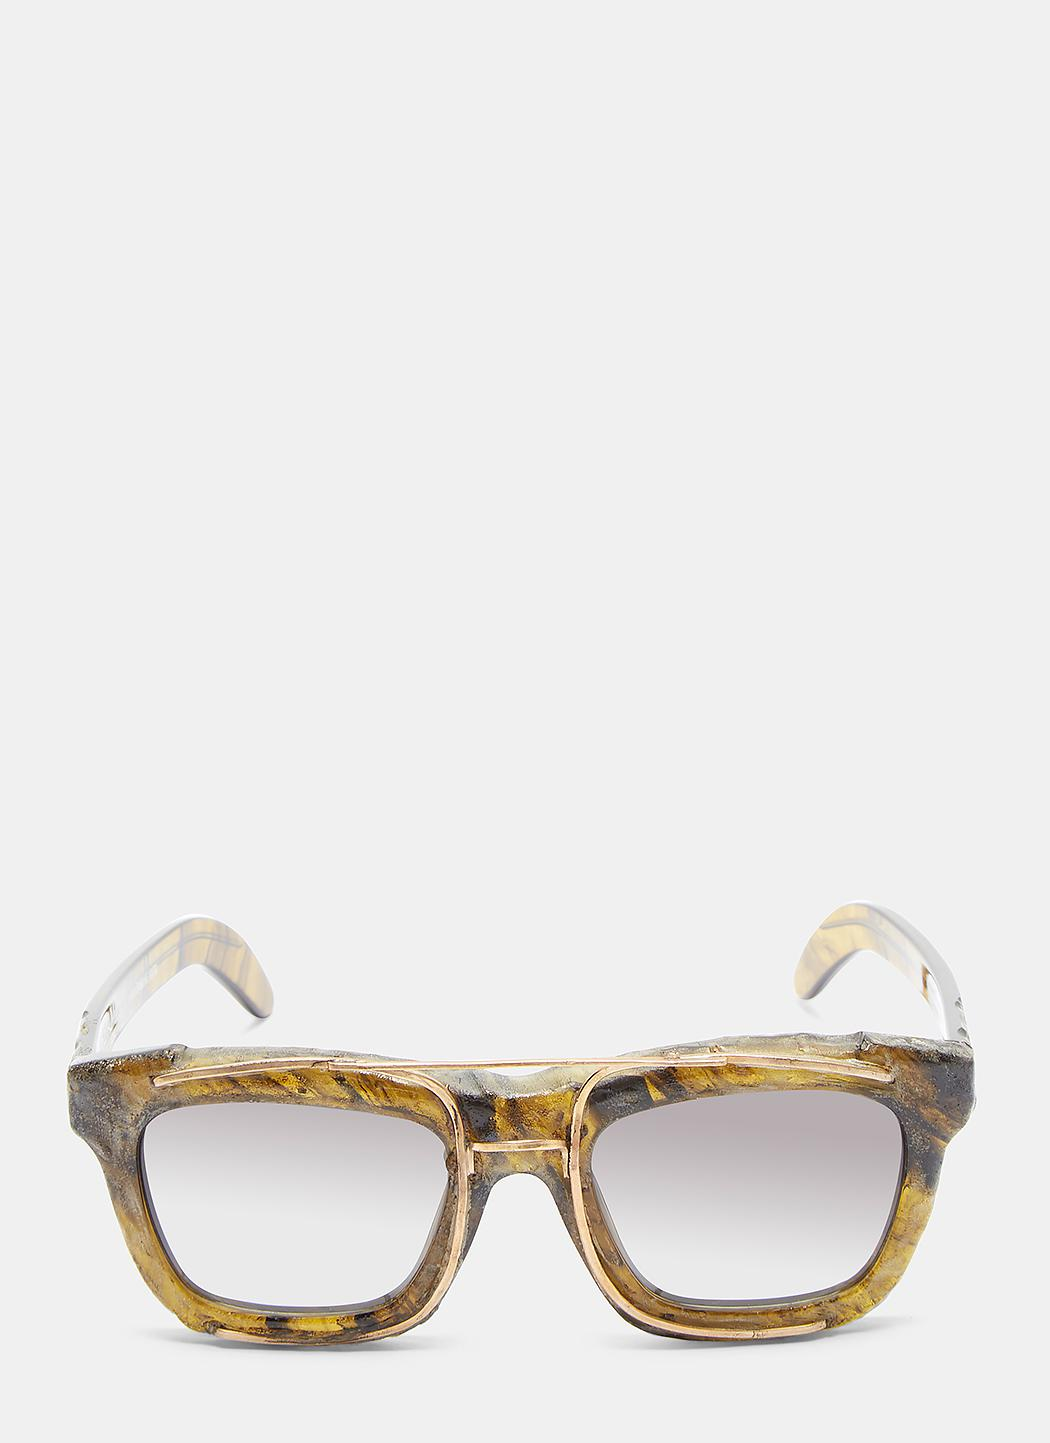 Kuboraum Lumiere Mask C2 Chiselled Sunglasses In Khaki in Natural for Men